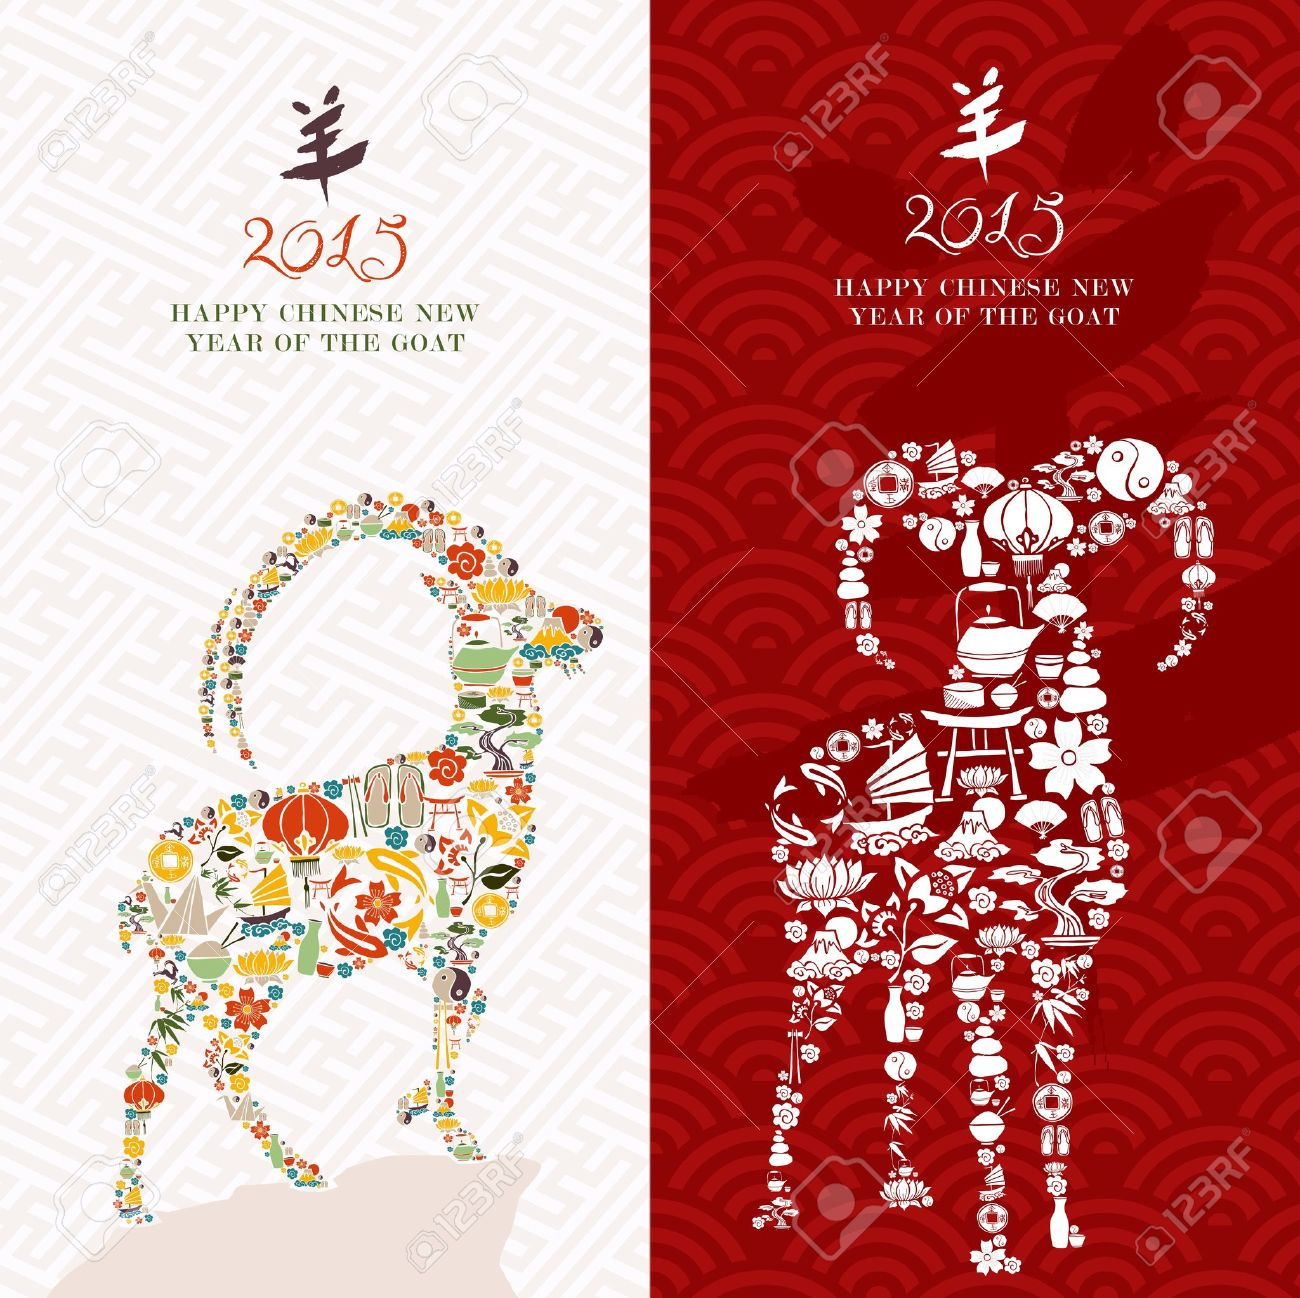 2015 chinese new year of the goat greeting cards set with oriental 2015 chinese new year of the goat greeting cards set with oriental icons shape composition m4hsunfo